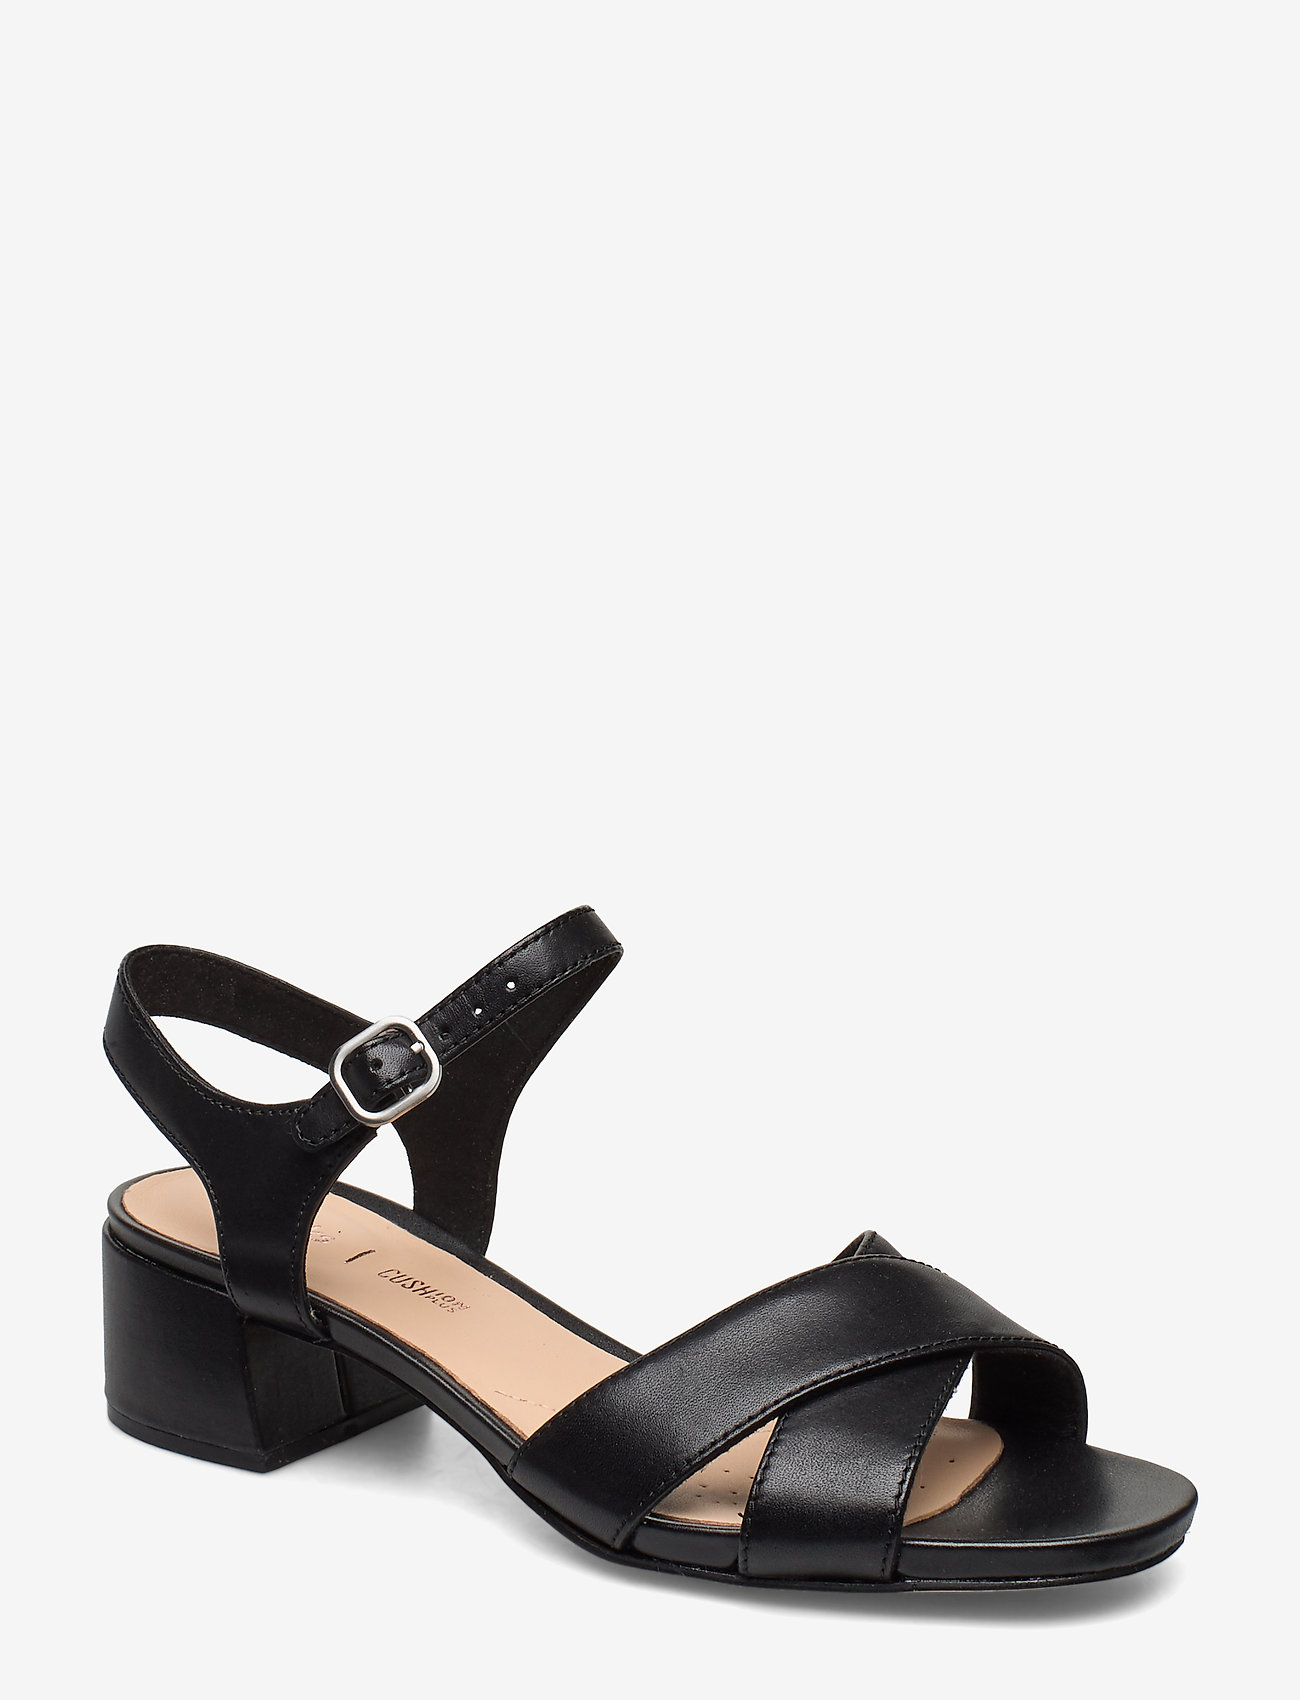 Clarks - Sheer35 Strap - sandales à talons - black leather - 0